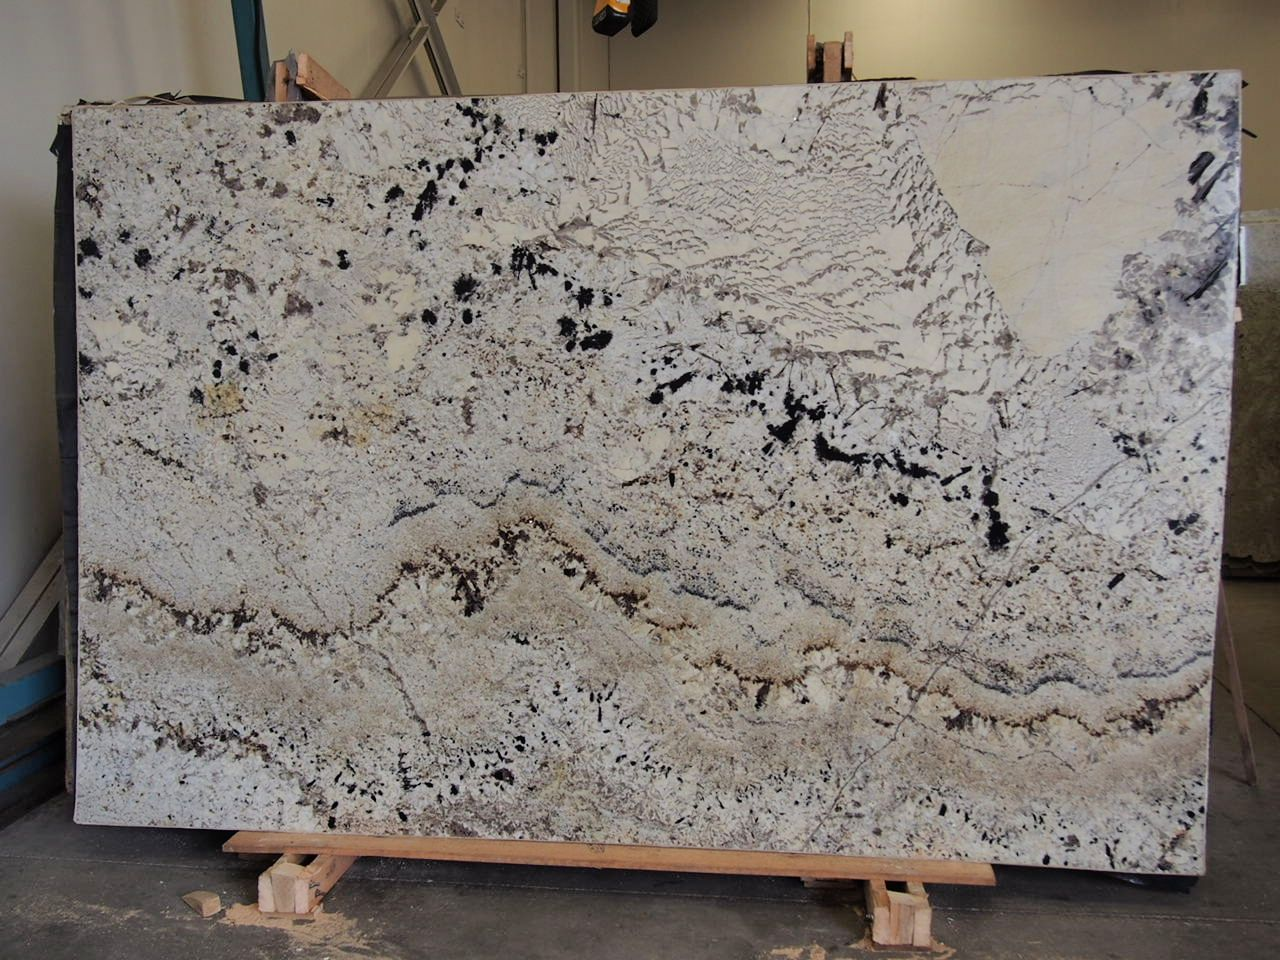 Swiss Alps Granite Slab Sold By Milestone Marble Size 77 X 117 X 3 4 Inches Stone Slab Granite Slab Things To Sell